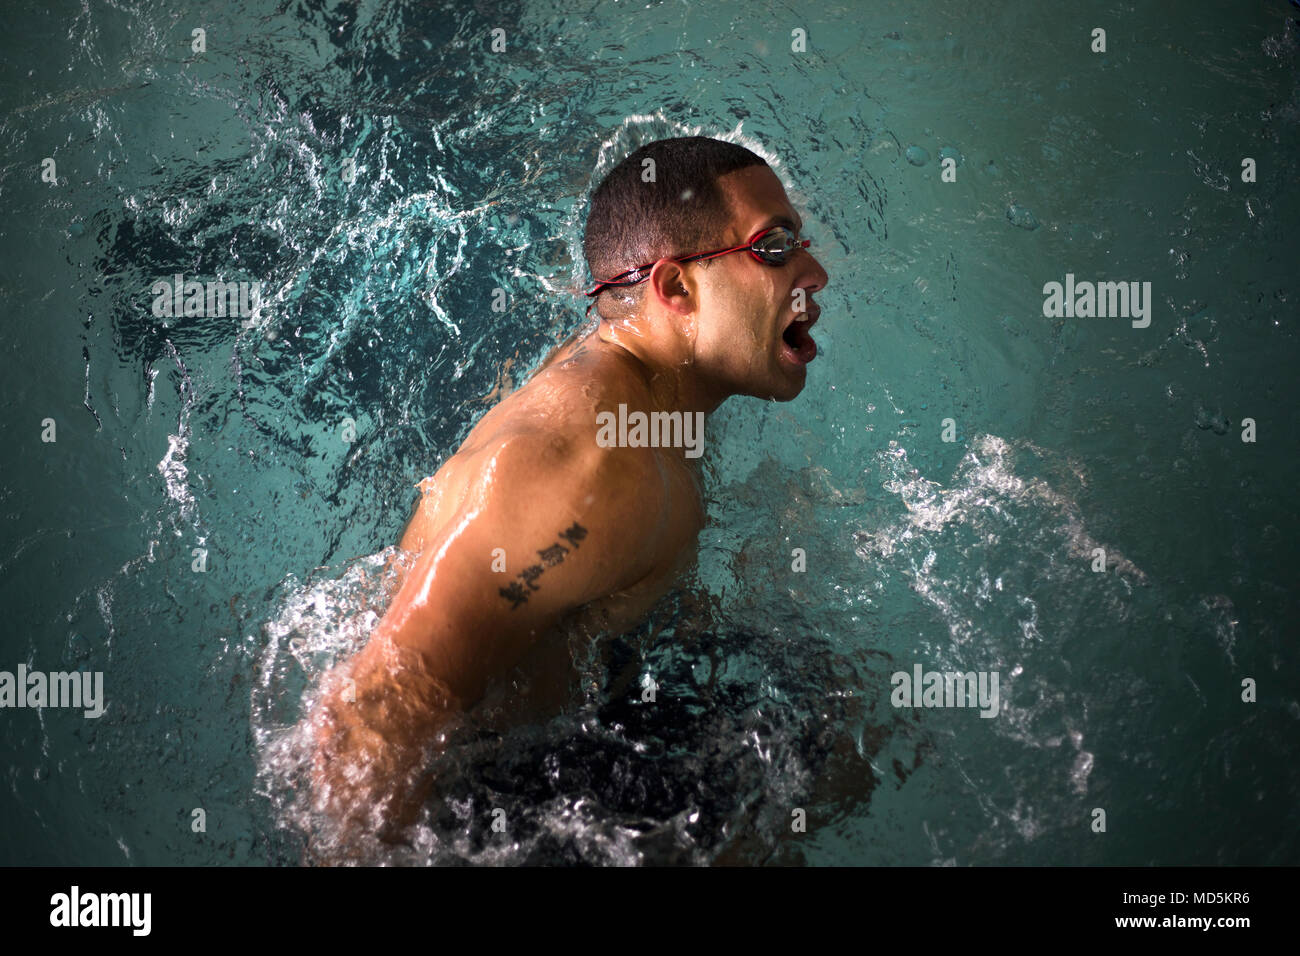 U.S. Marine Corps Gunnery Sgt. Alexis Padilla takes a breath before kicking off the pool wall to breaststroke his remaining 25 meters during the 2018 Marine Corps Trials swimming competition. The Marine Corps Trials promotes recovery and rehabilitation through adaptive sport participation and develops camaraderie among recovering service members (RSMs) and veterans. It is an opportunity for RSMs to demonstrate their achievements and serves as the primary venue to select Marine Corps participants for the DoD Warrior Games. (U.S. Marine Corps photo by Sgt. Matthew Callahan) Stock Photo